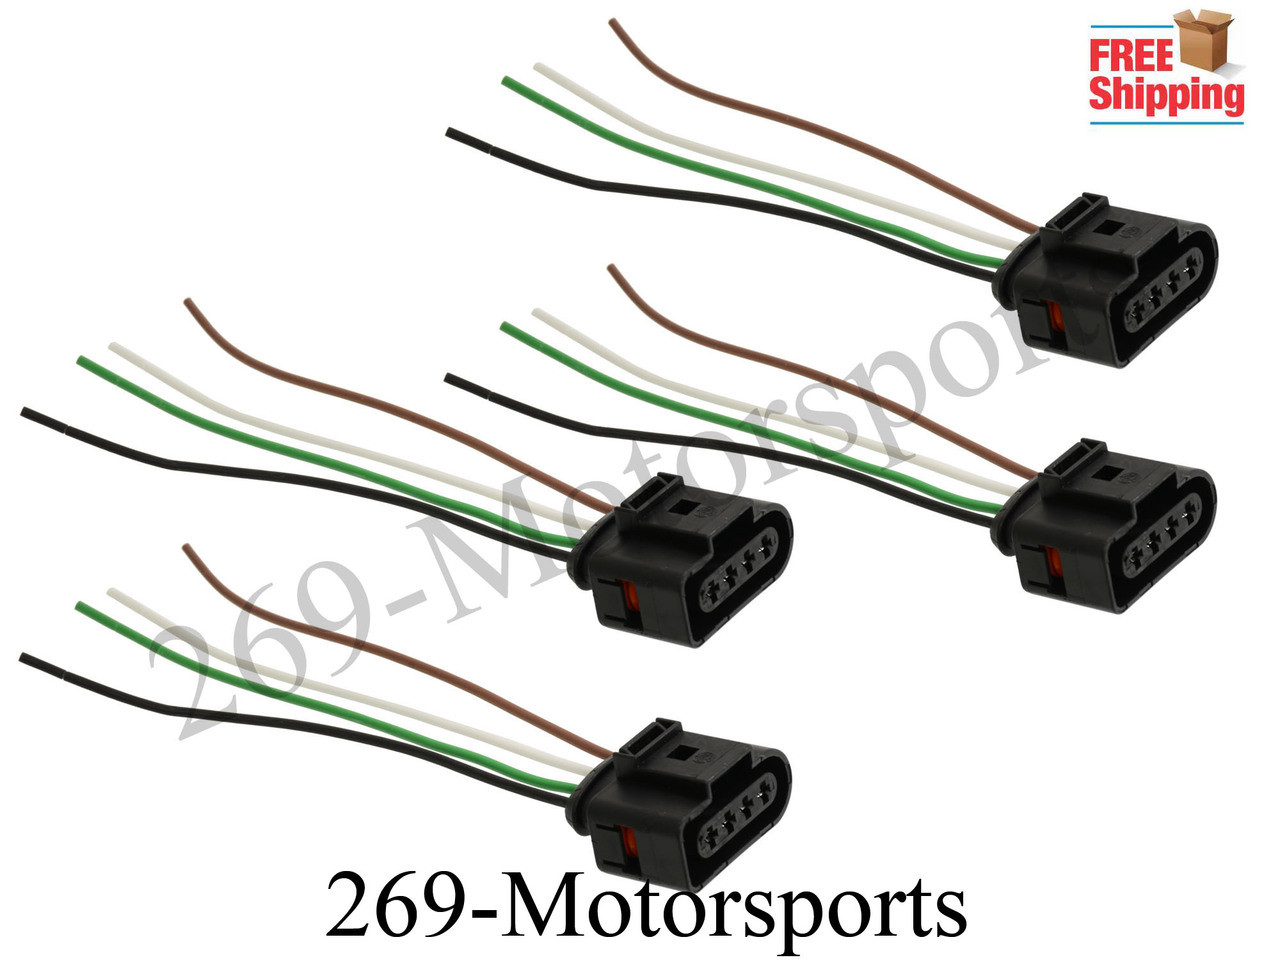 4 ignition coil connector repair kit harness wiring fits vw audi rh 269motorsports com 1966 VW Beetle Wiring Harness 57 VW Wiring Harness Installation